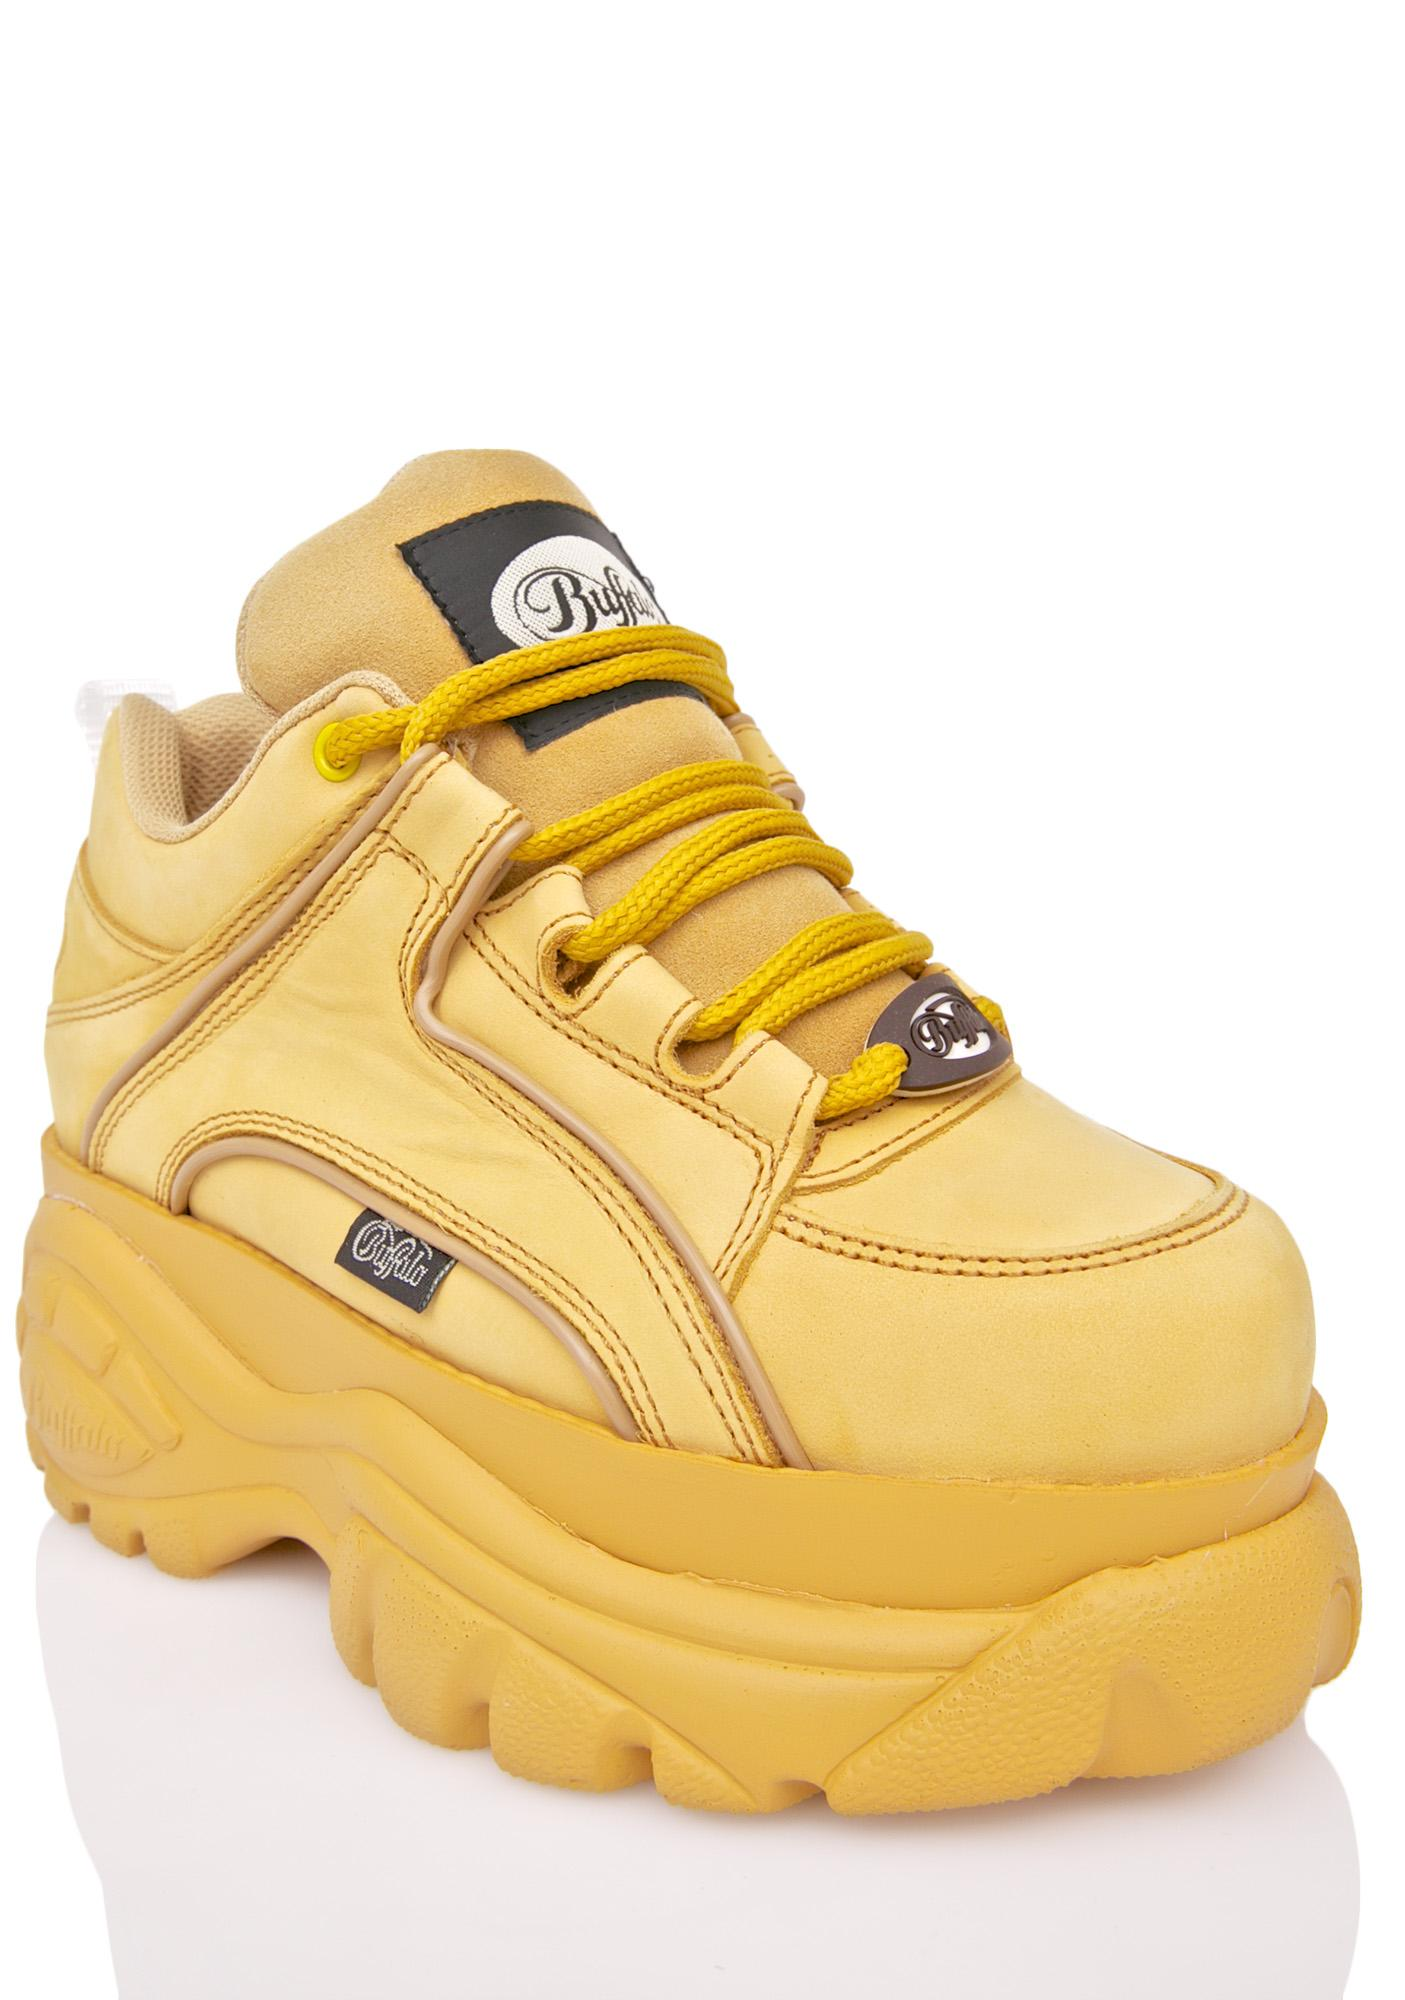 All Yellow High Top Shoes